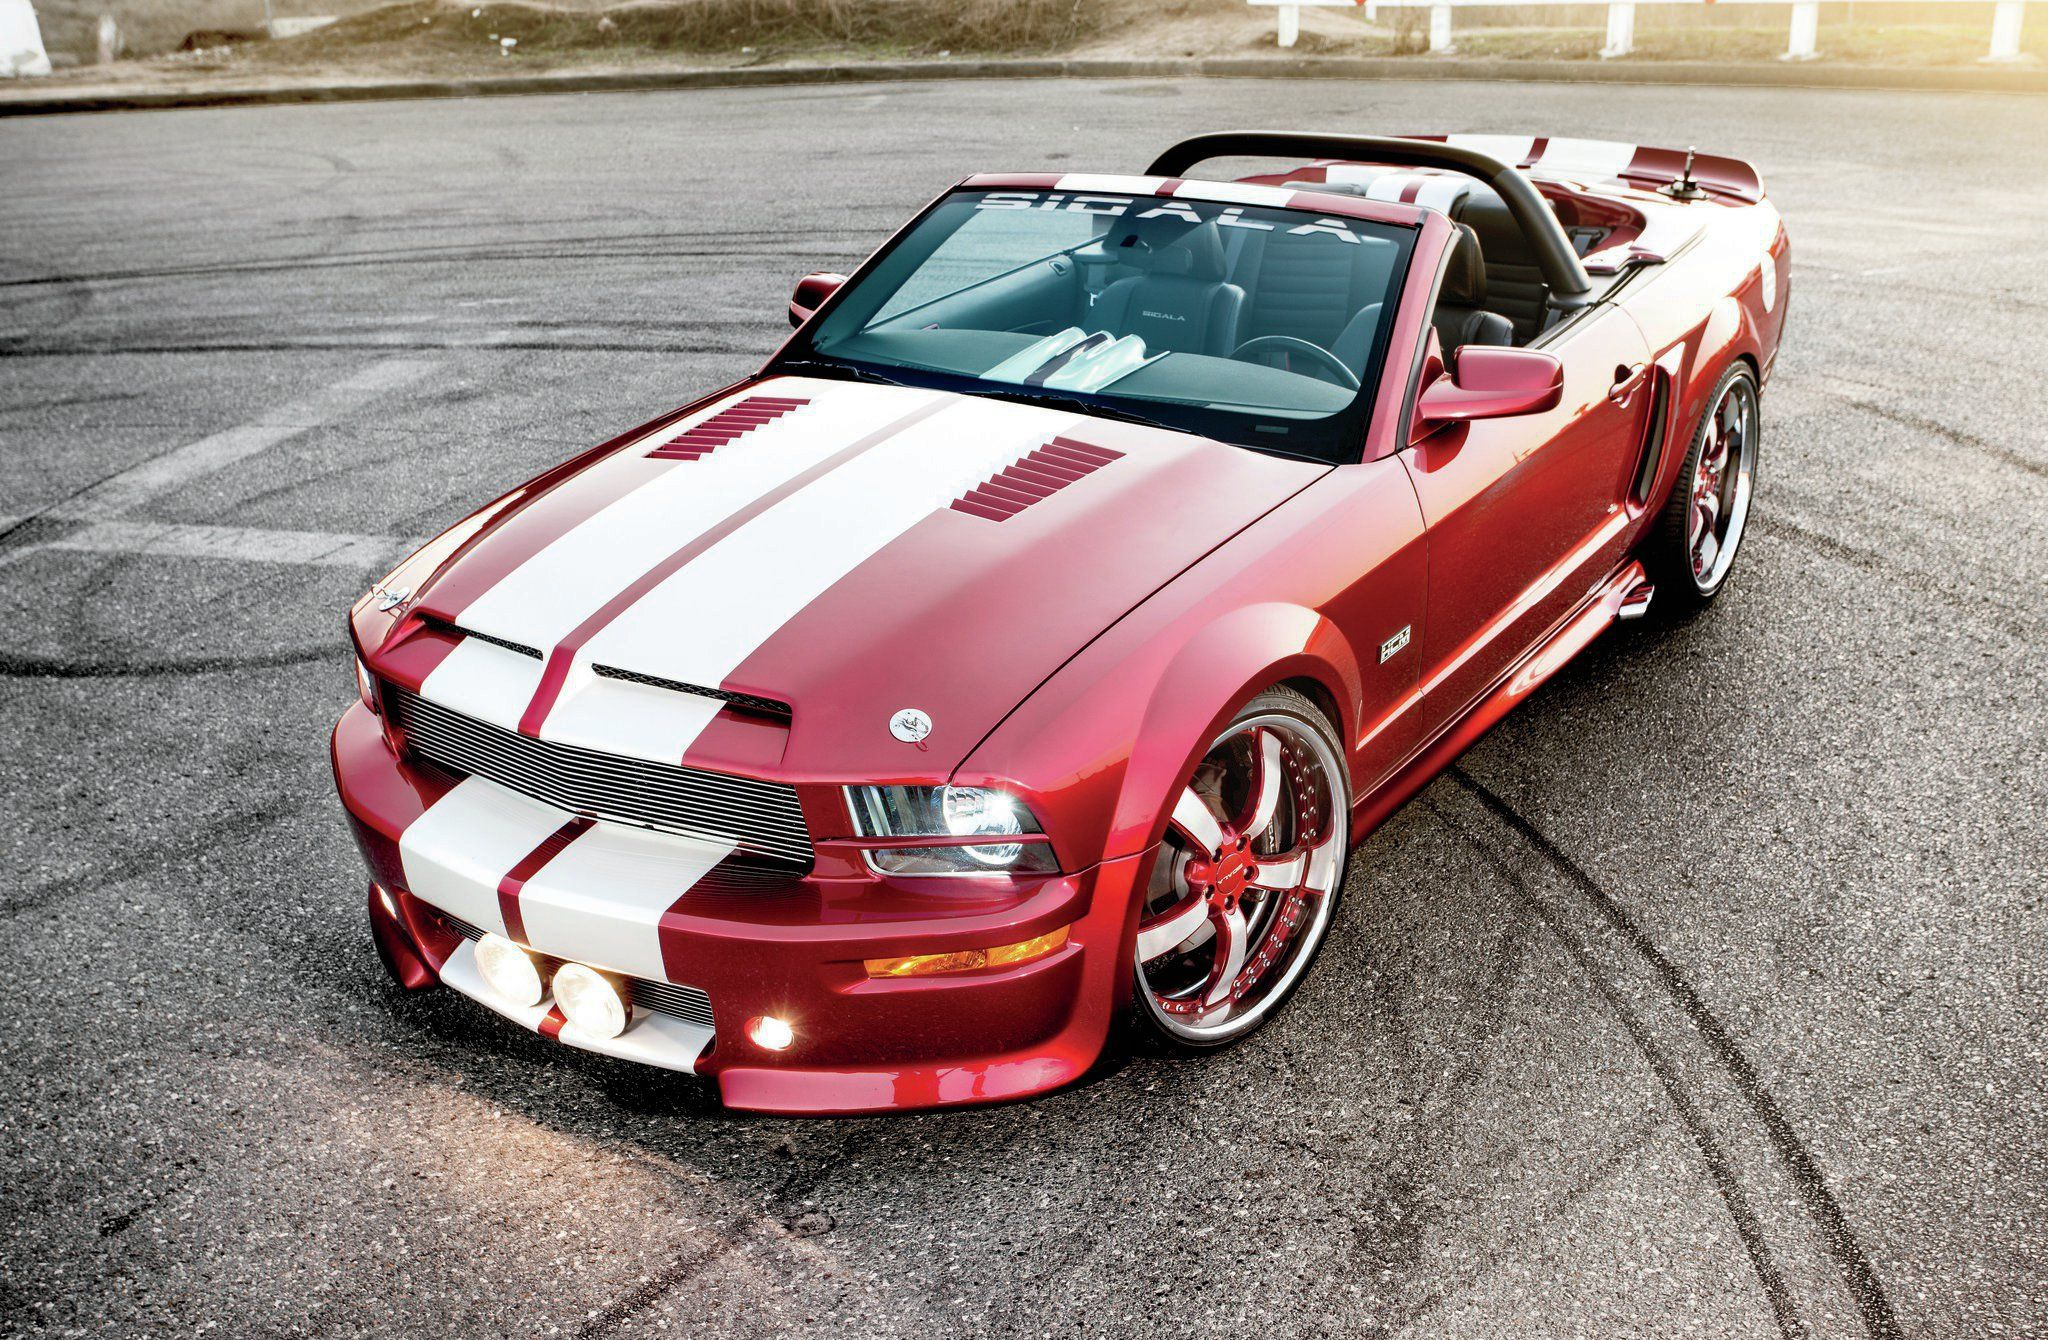 2009 mustang gt mustangs pinterest 2009 mustang mustang and view 2009 ford mustang gt convertible top front quarter photo 70011725 from 2009 ford mustang gt convertible sigala supremacy sciox Images